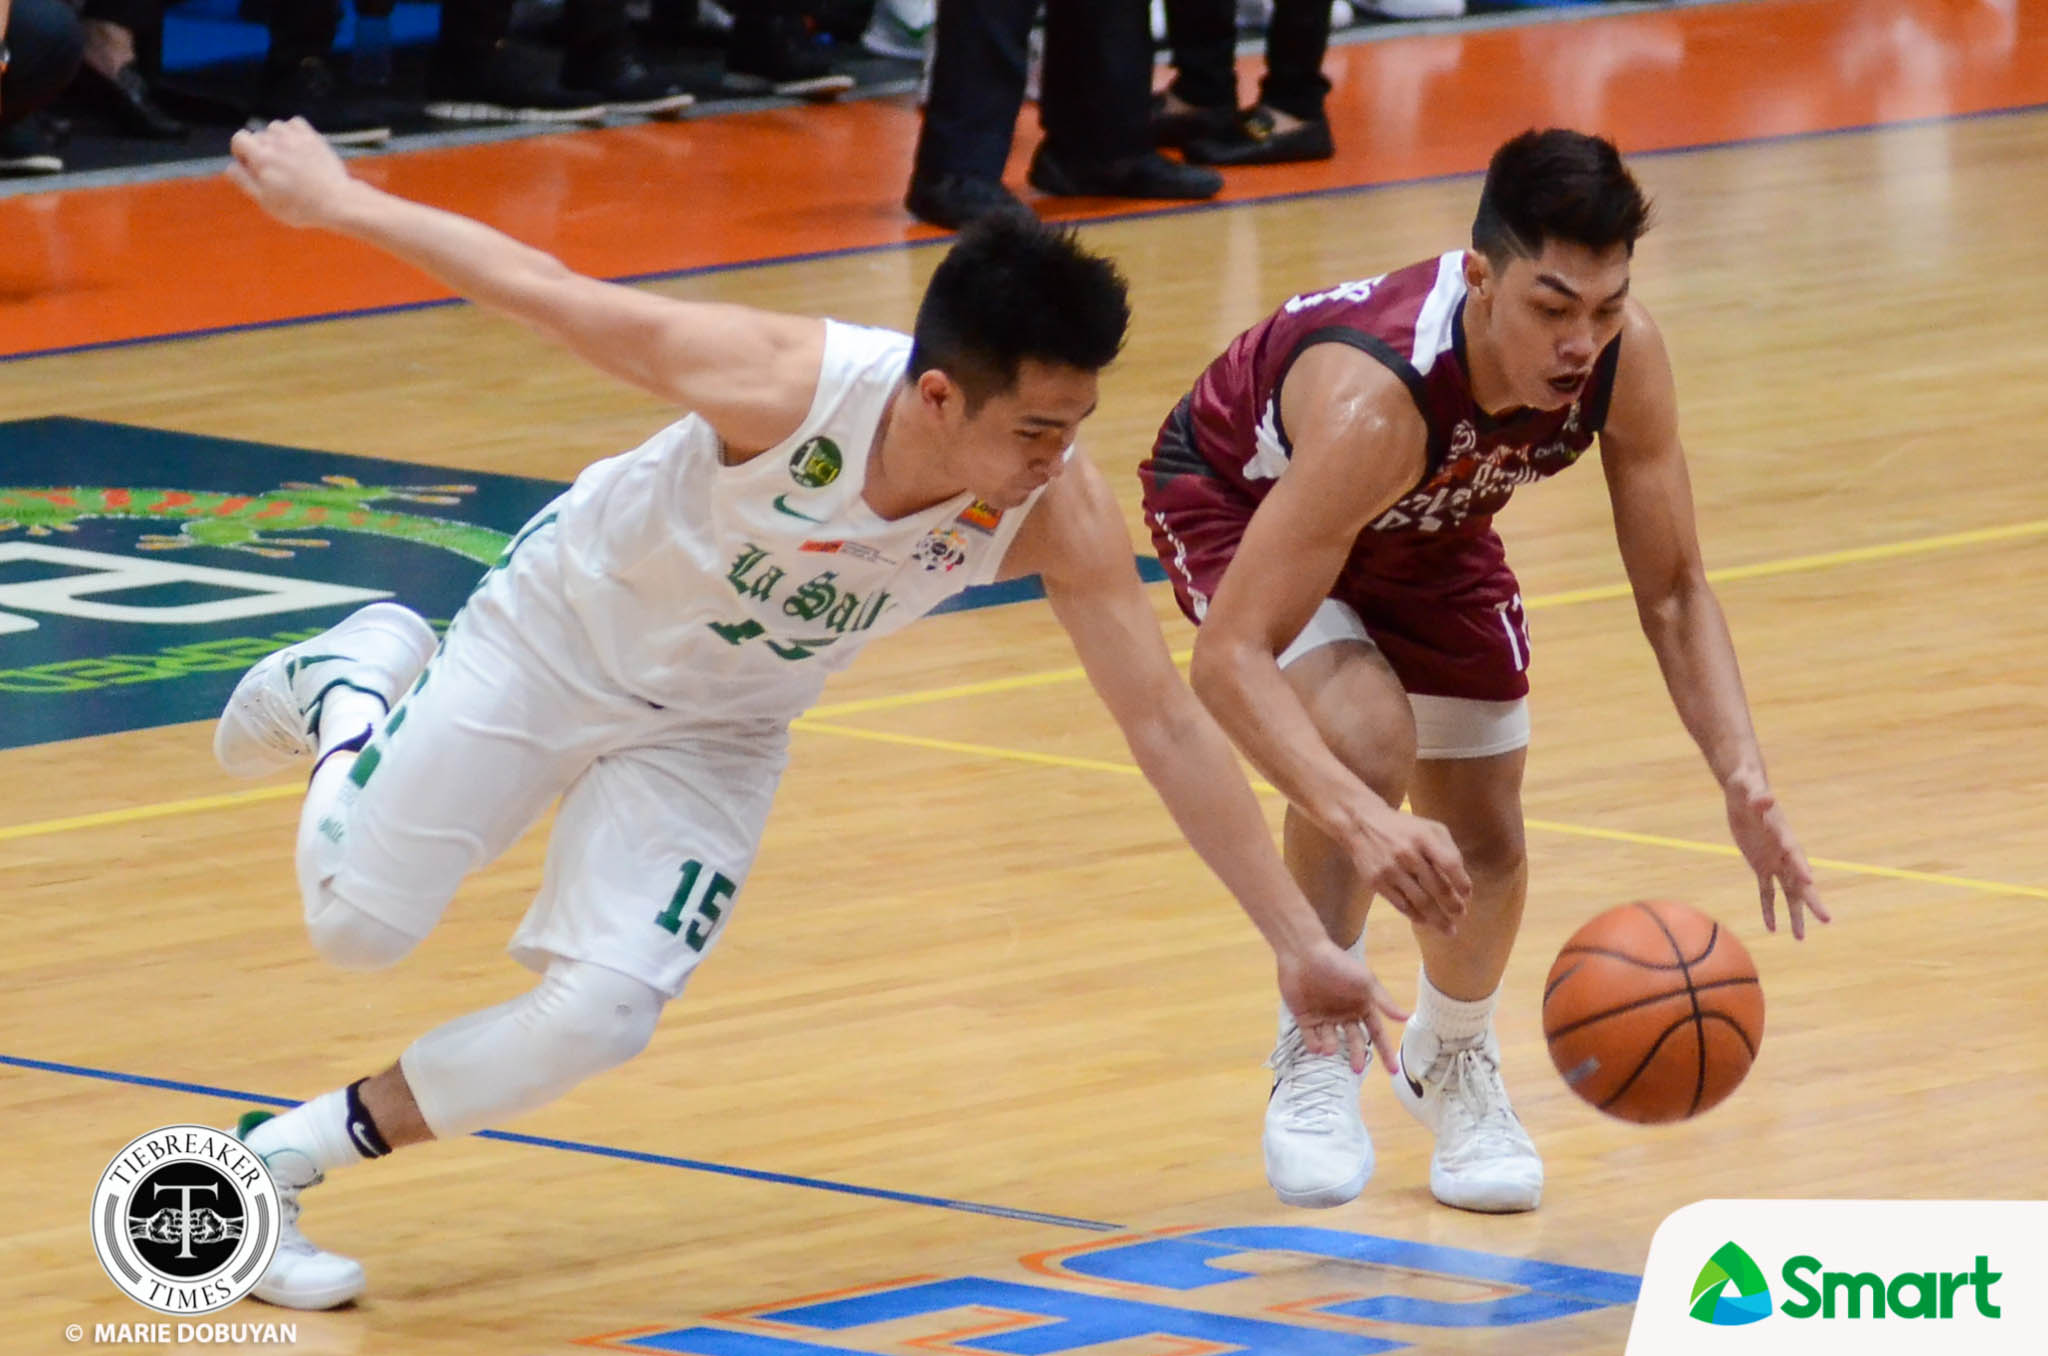 Tiebreaker Times Kib Montalbo turns sentimental after facing Aldin Ayo Basketball DLSU News UAAP  UAAP Season 81 Men's Basketball UAAP Season 81 Kib Montalbo DLSU Men's Basketball